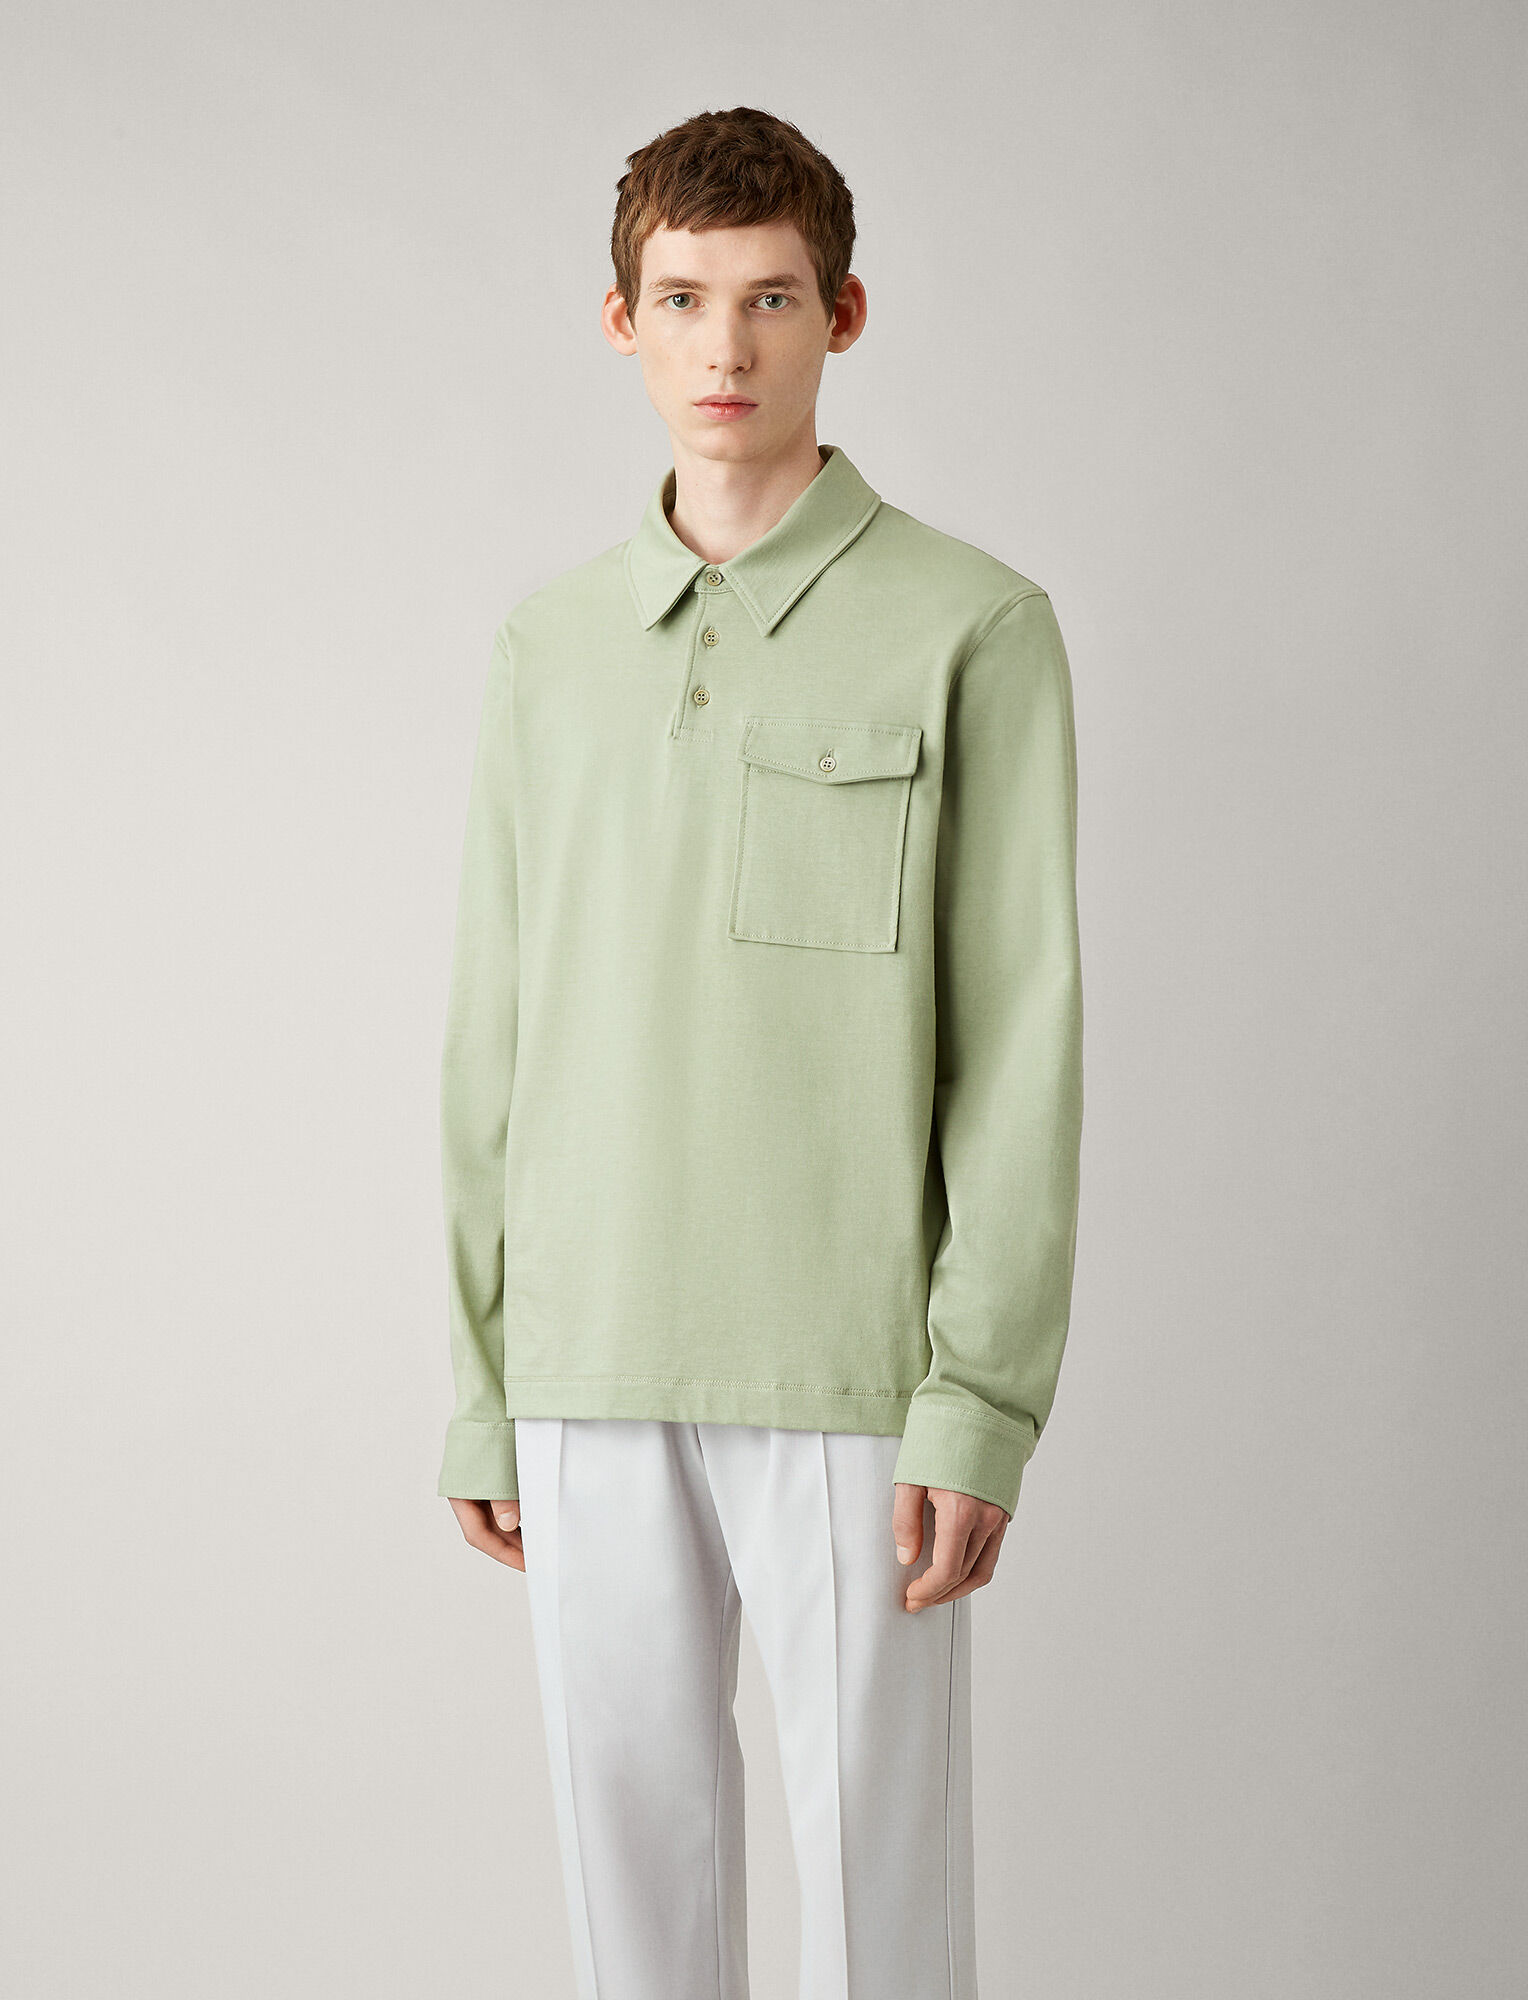 Joseph, Polo Heavy Jersey Tee, in KHAKI